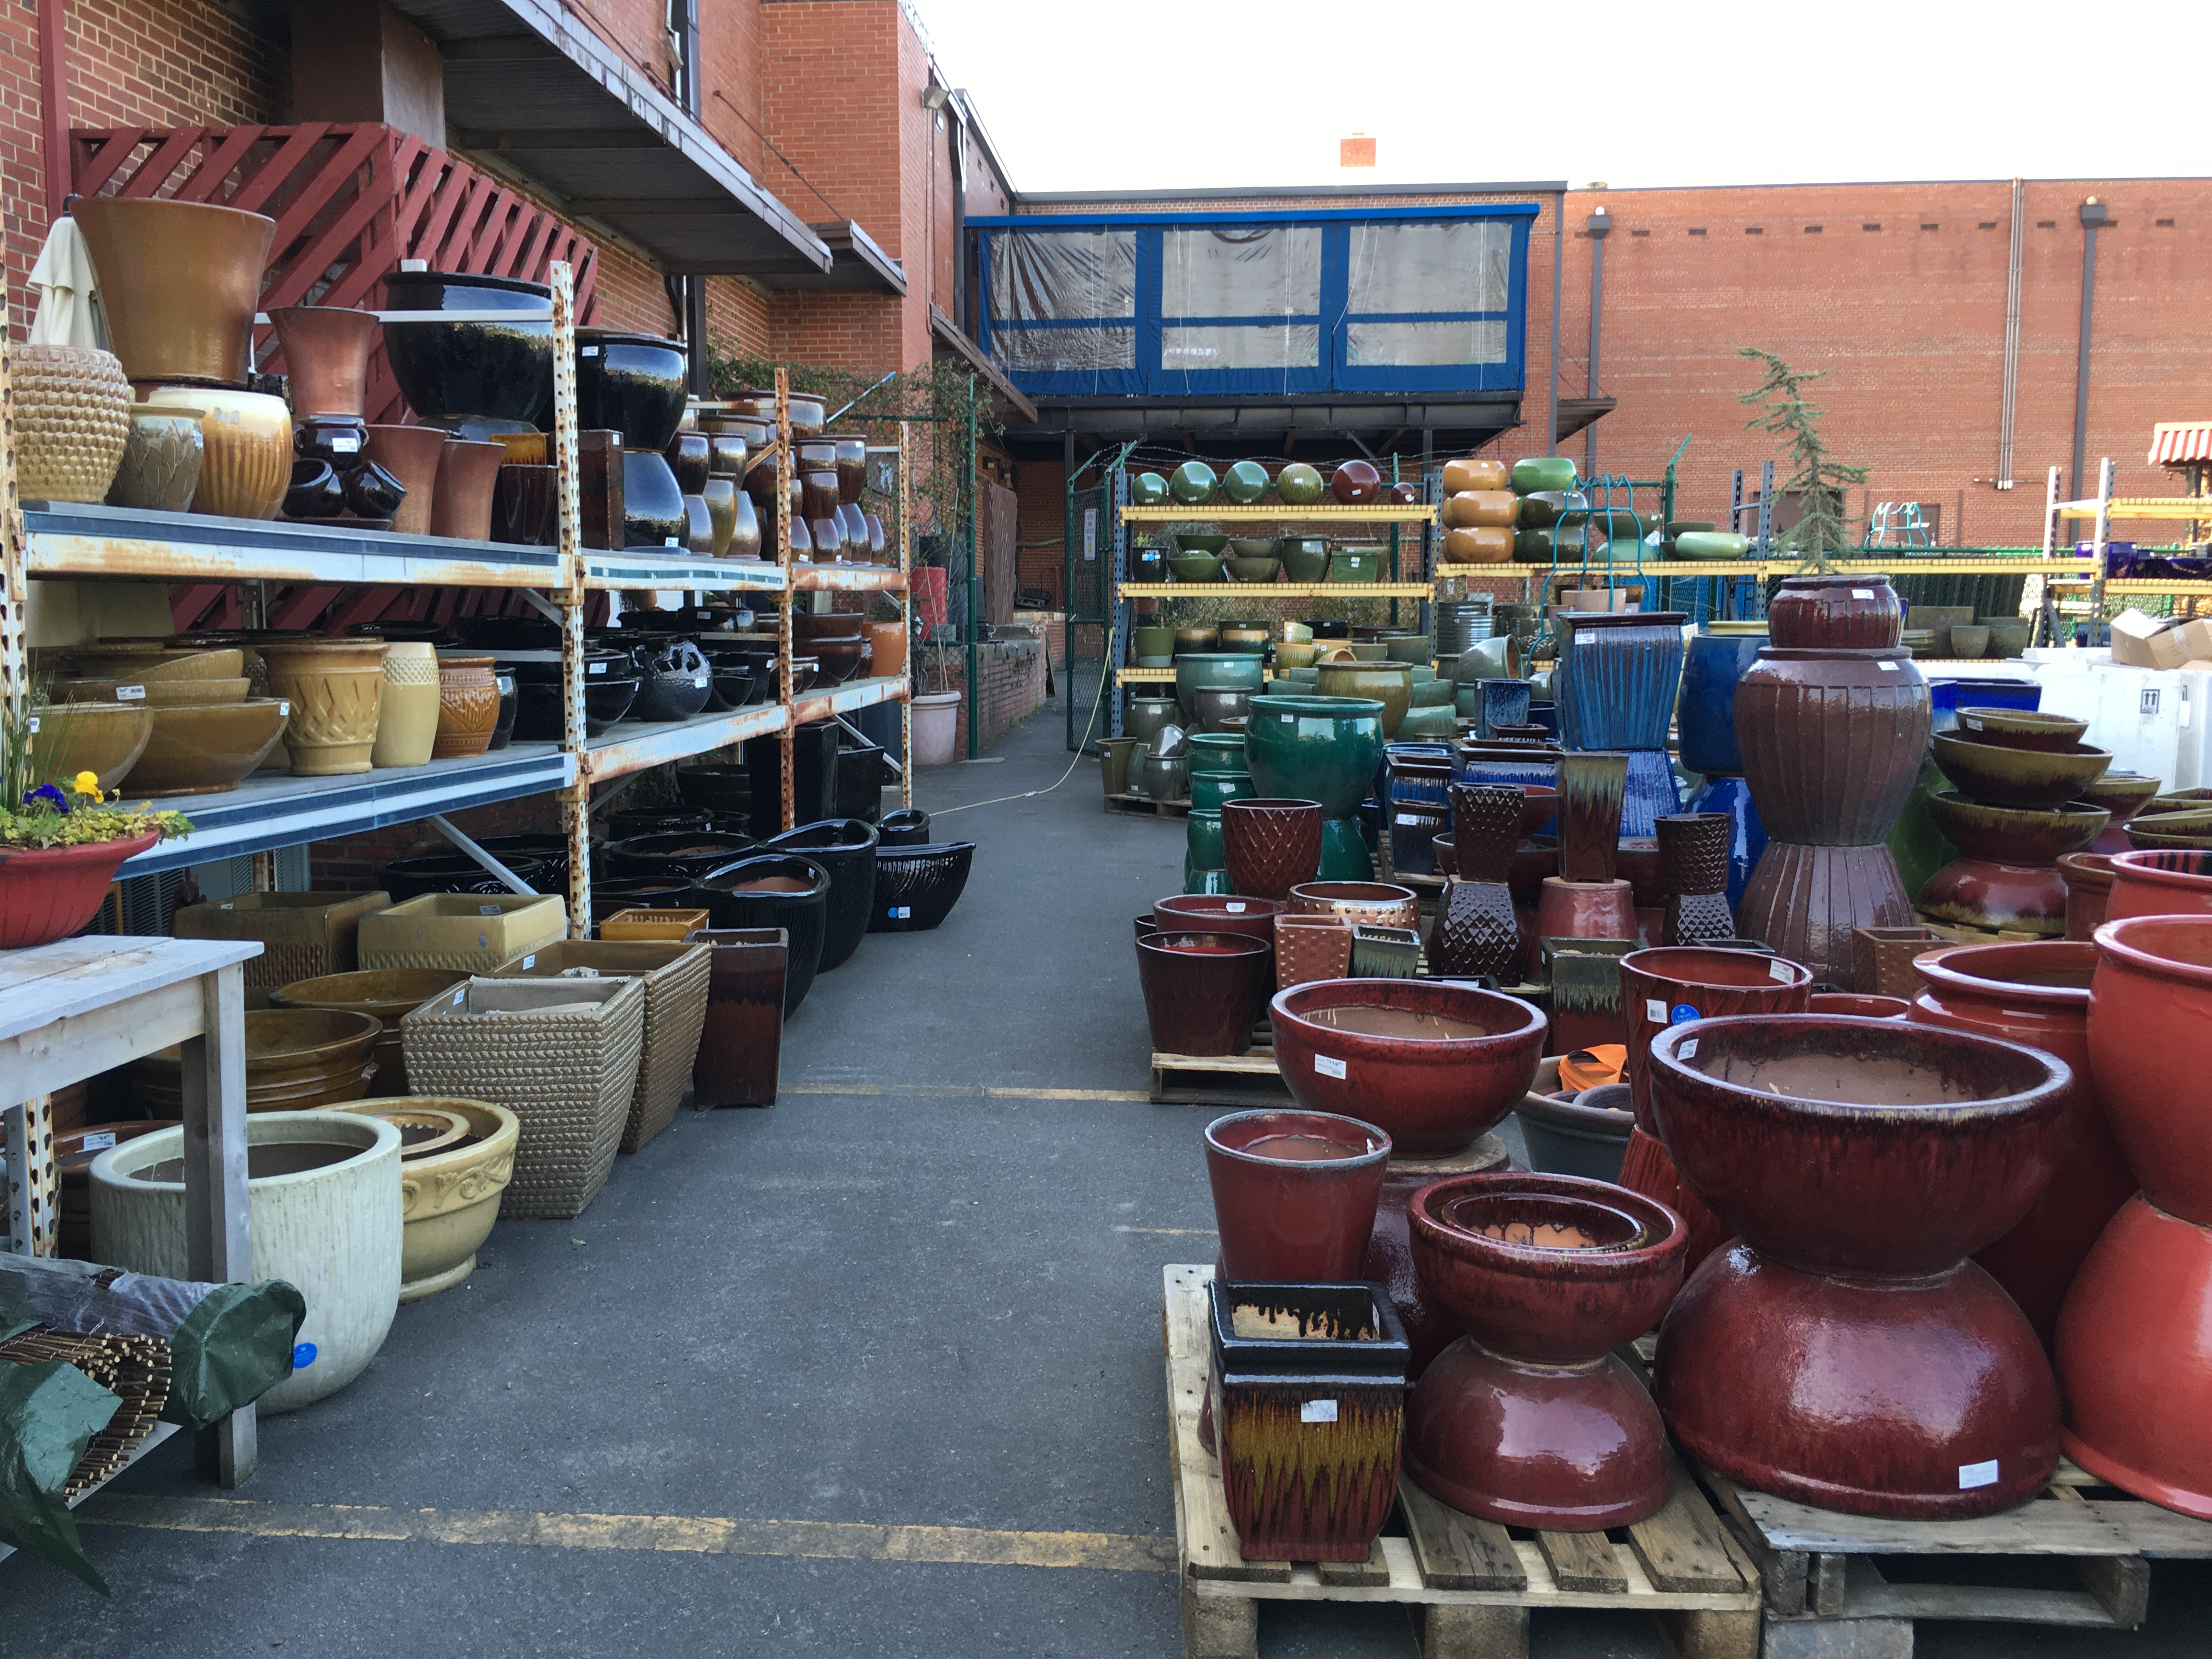 High Quality Planters In All Sorts Of Colors From Blackhawk Hardware In Charlotte, NC